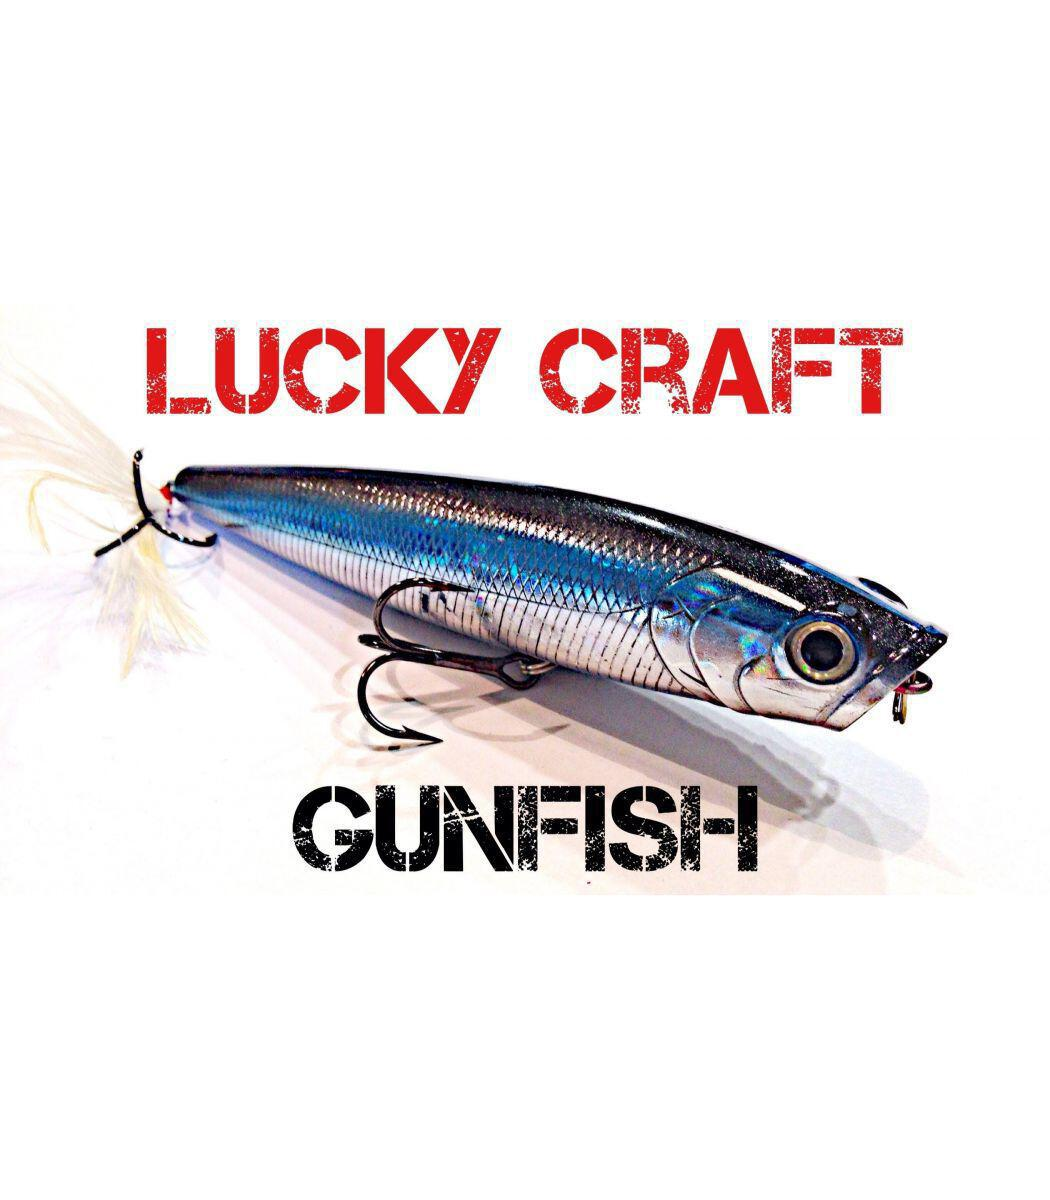 lucky craft lures lucky craft gunfish lure 2363